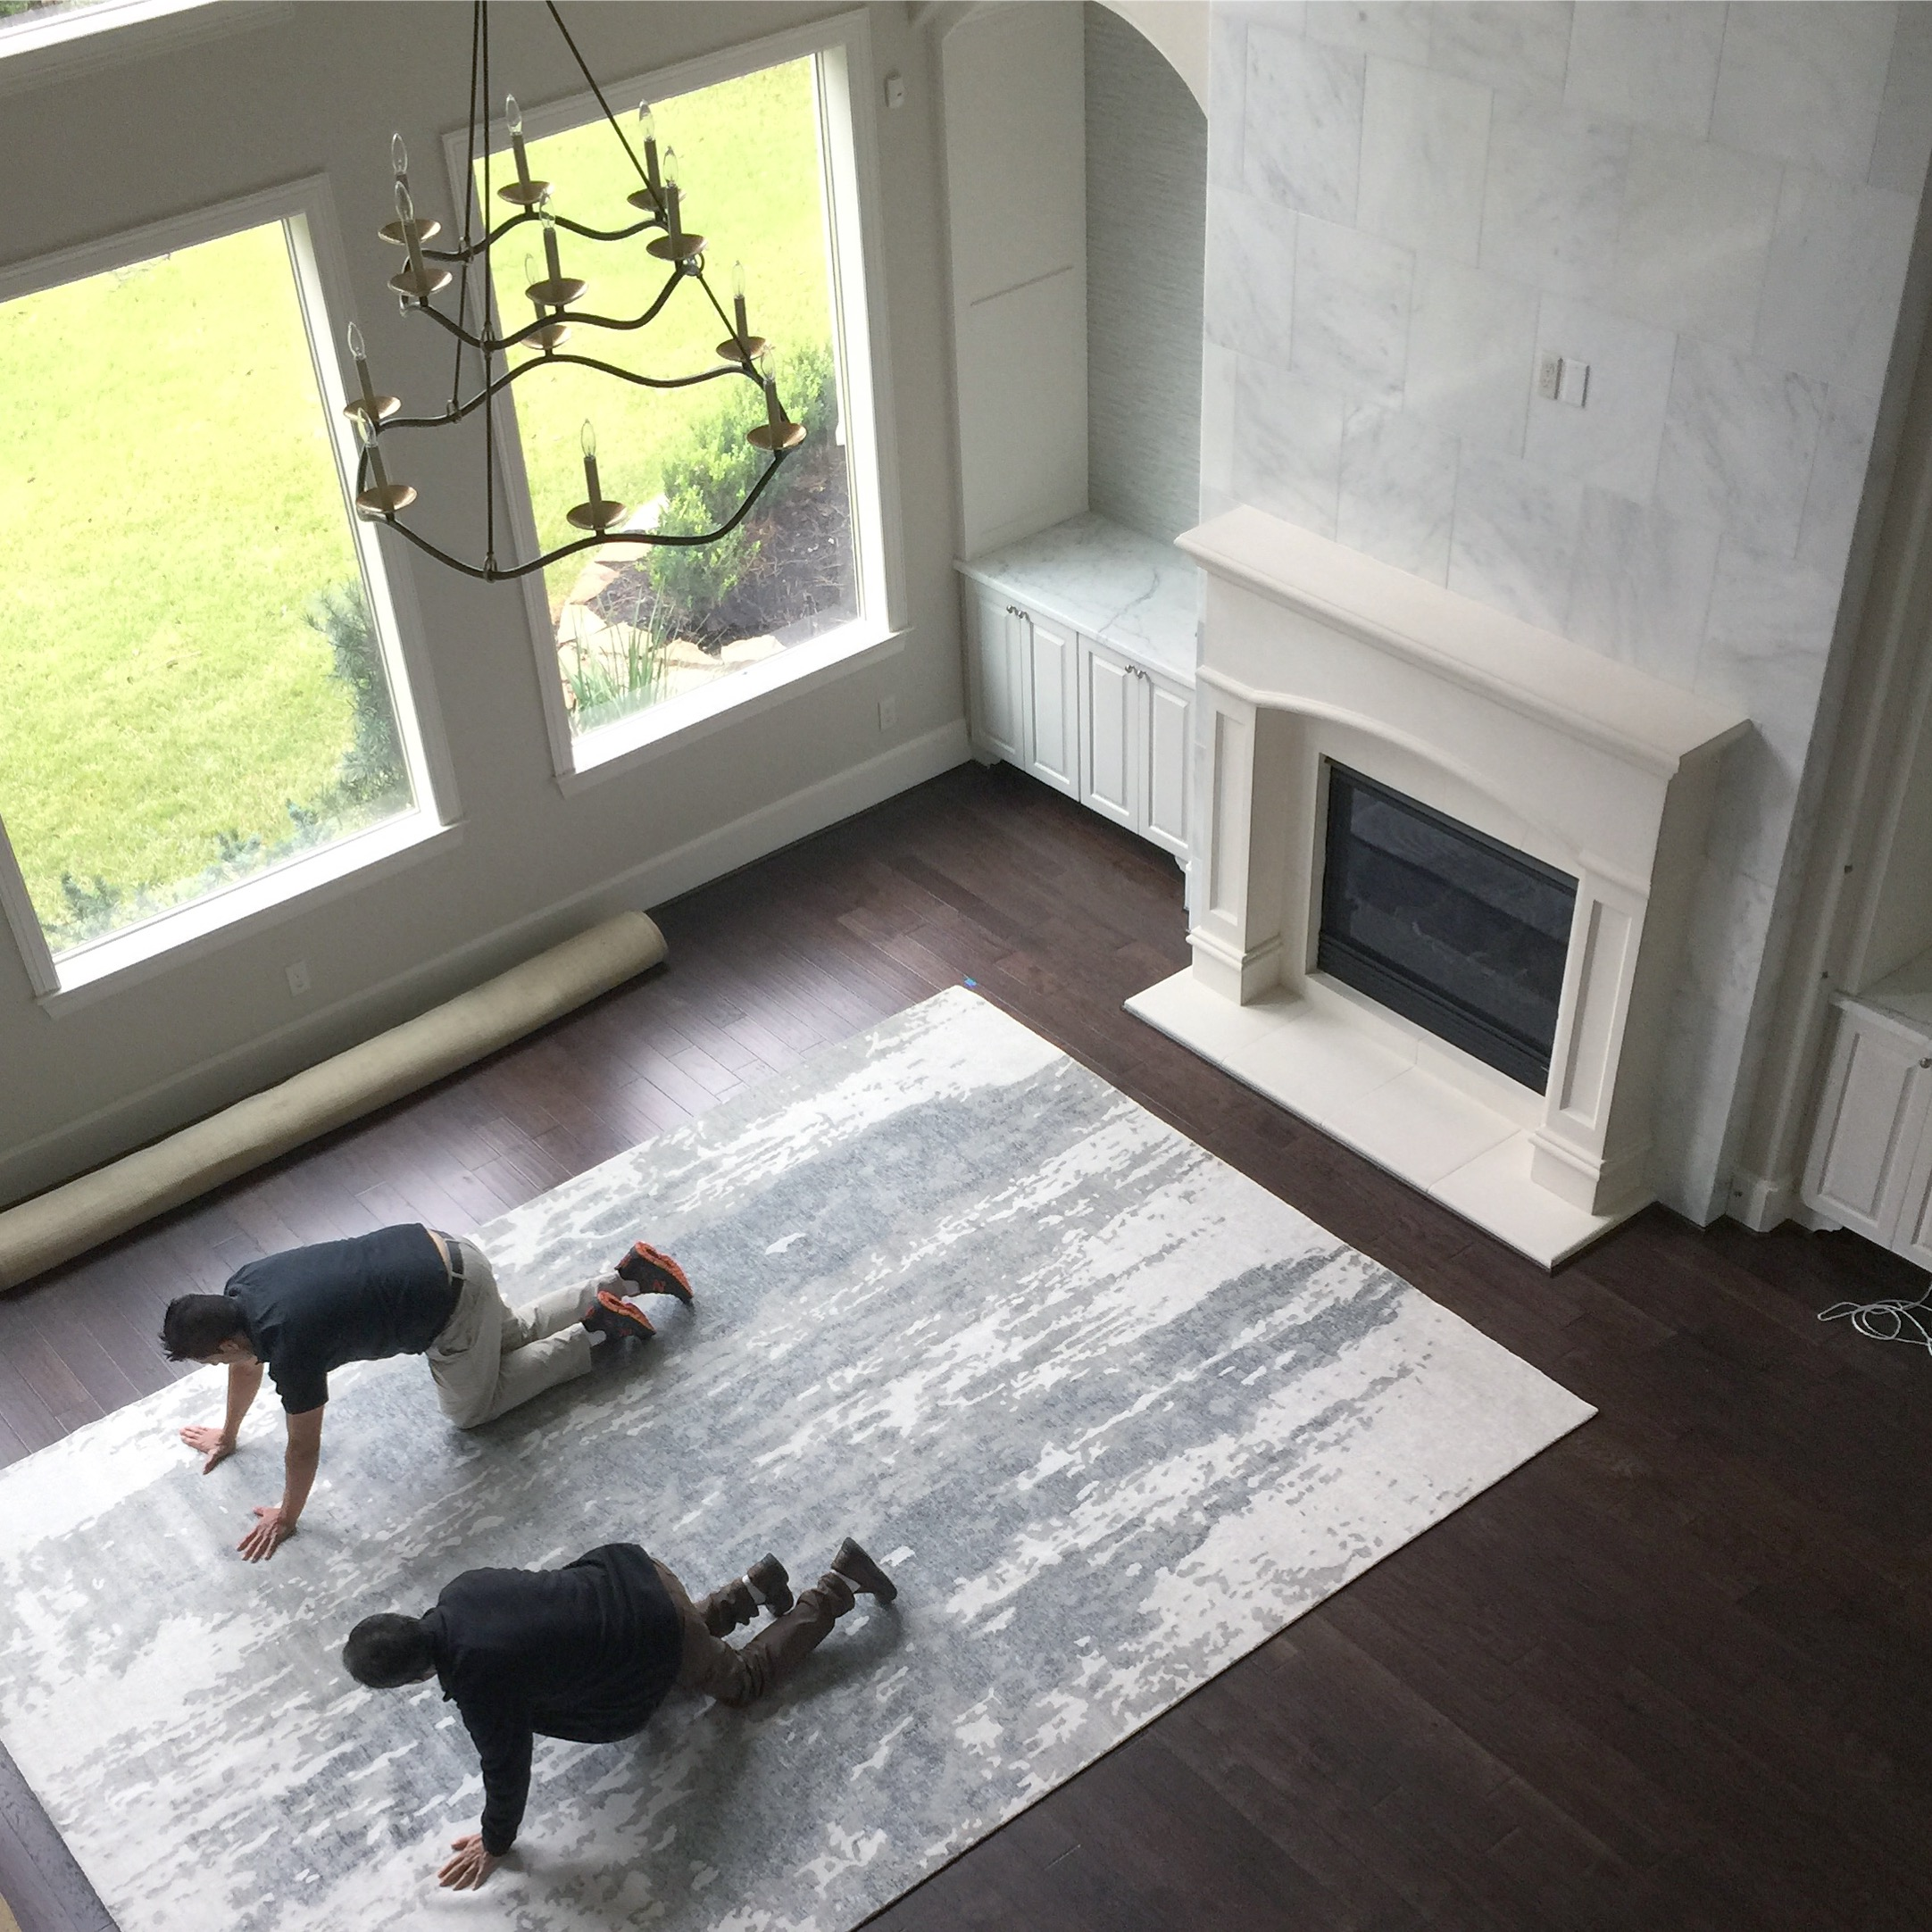 Rug installation in living room #livingroom #rug #livingroomdecor